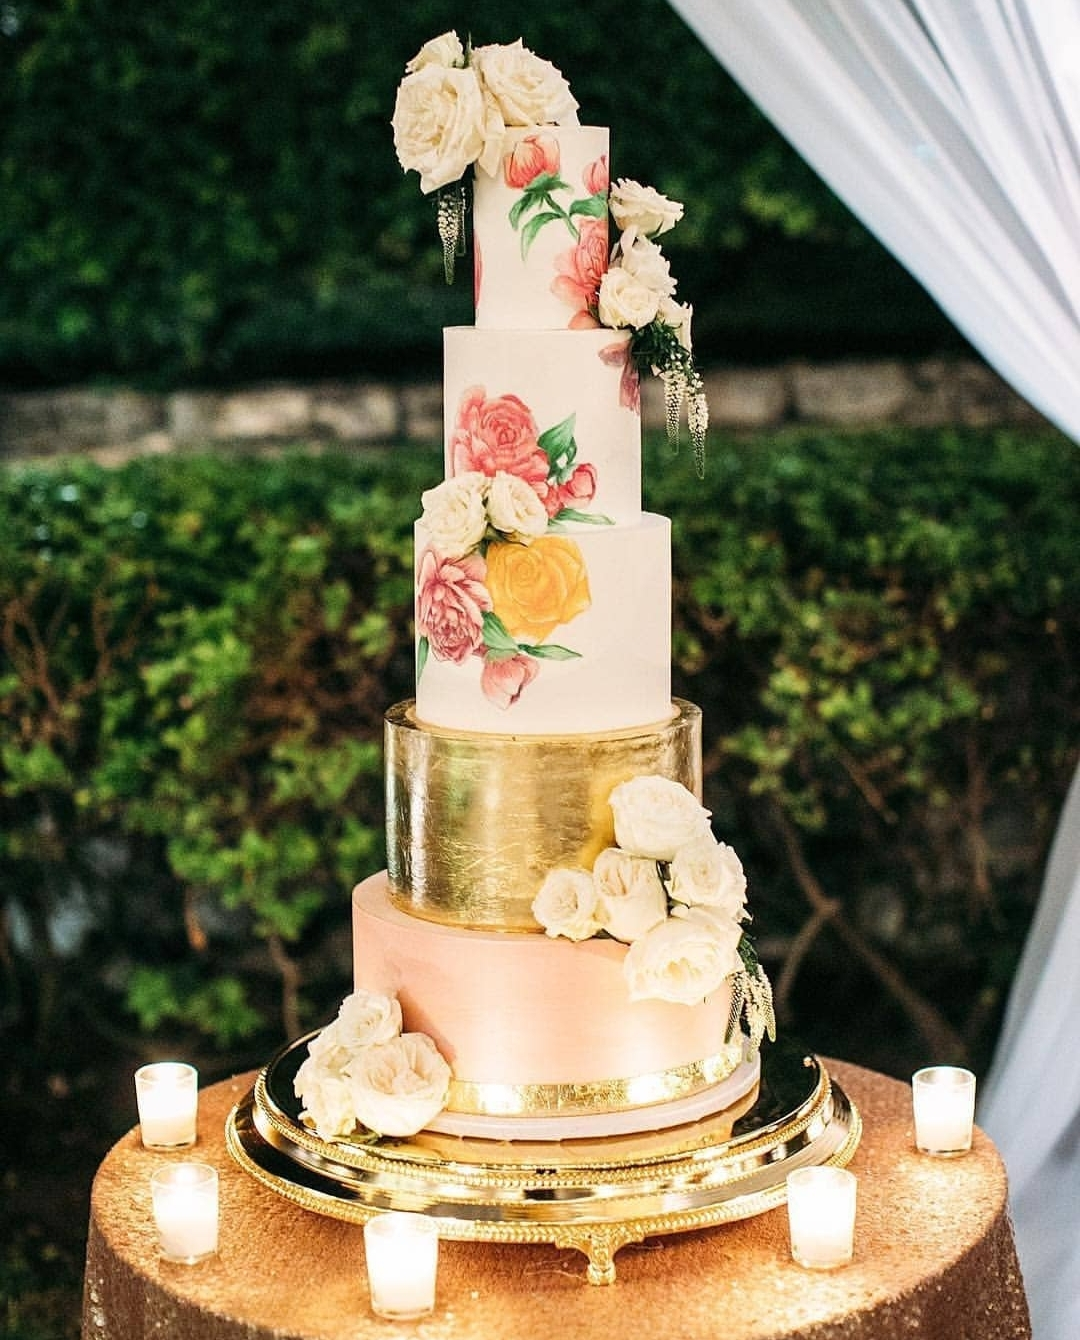 Goldstein Wedding - Custom Design featuring a beautiful Luster Technique with Hand painted Florals and a 24K gold leaf tier